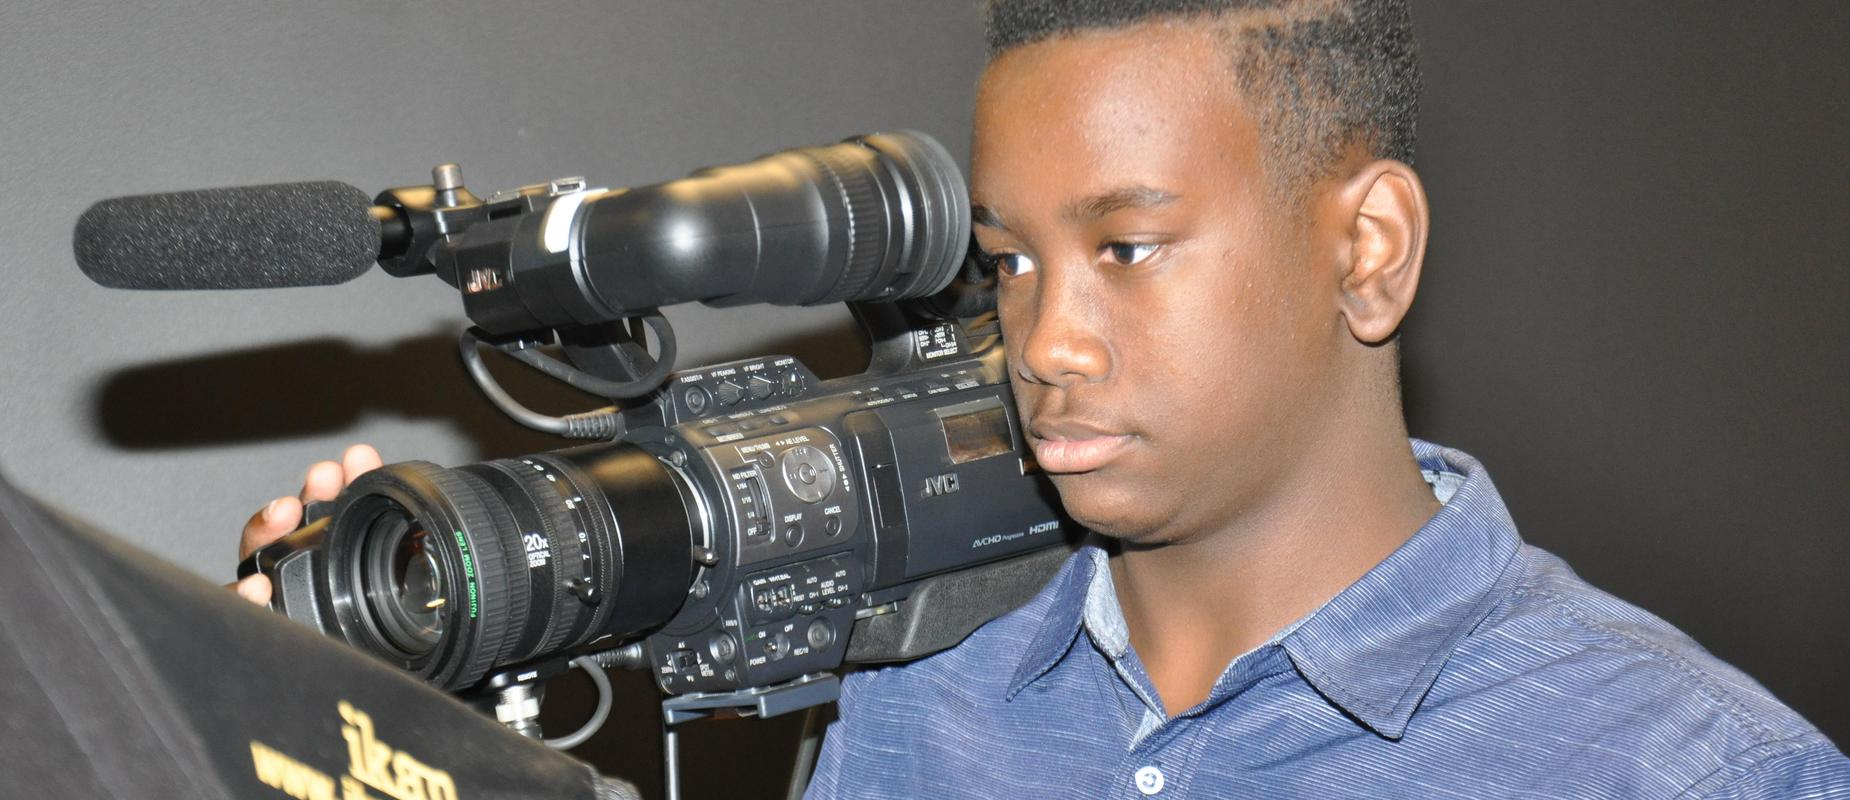 Audio-Video Department at the Bartow County College and Career Academy